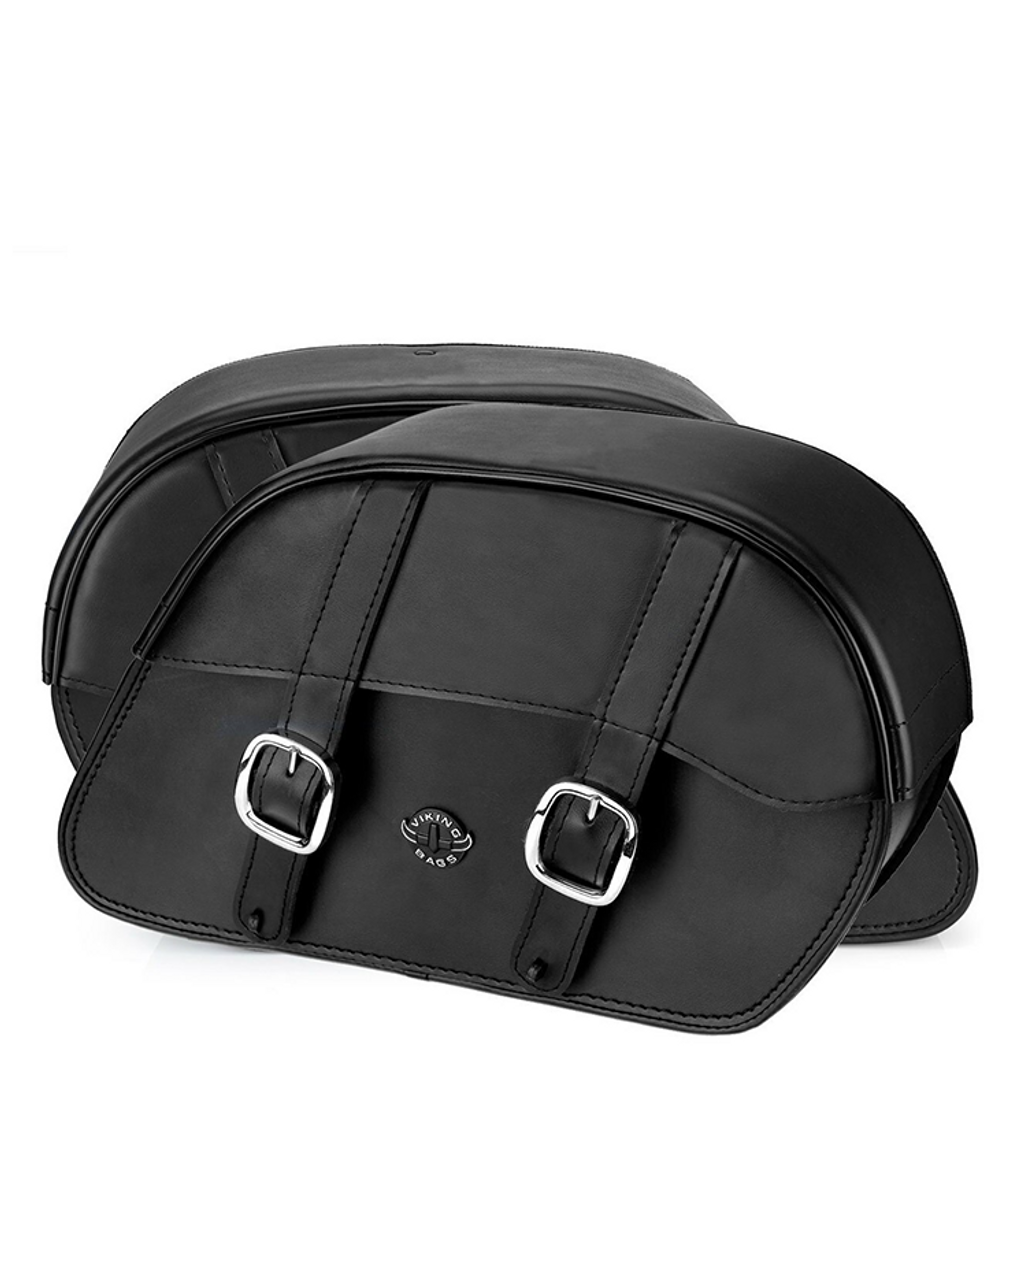 VikingBags Char Vital Large Padlock Double Strap Leather Motorcycle Saddlebags For Harley Softail Breakout 114 FXBRS Both Bags View